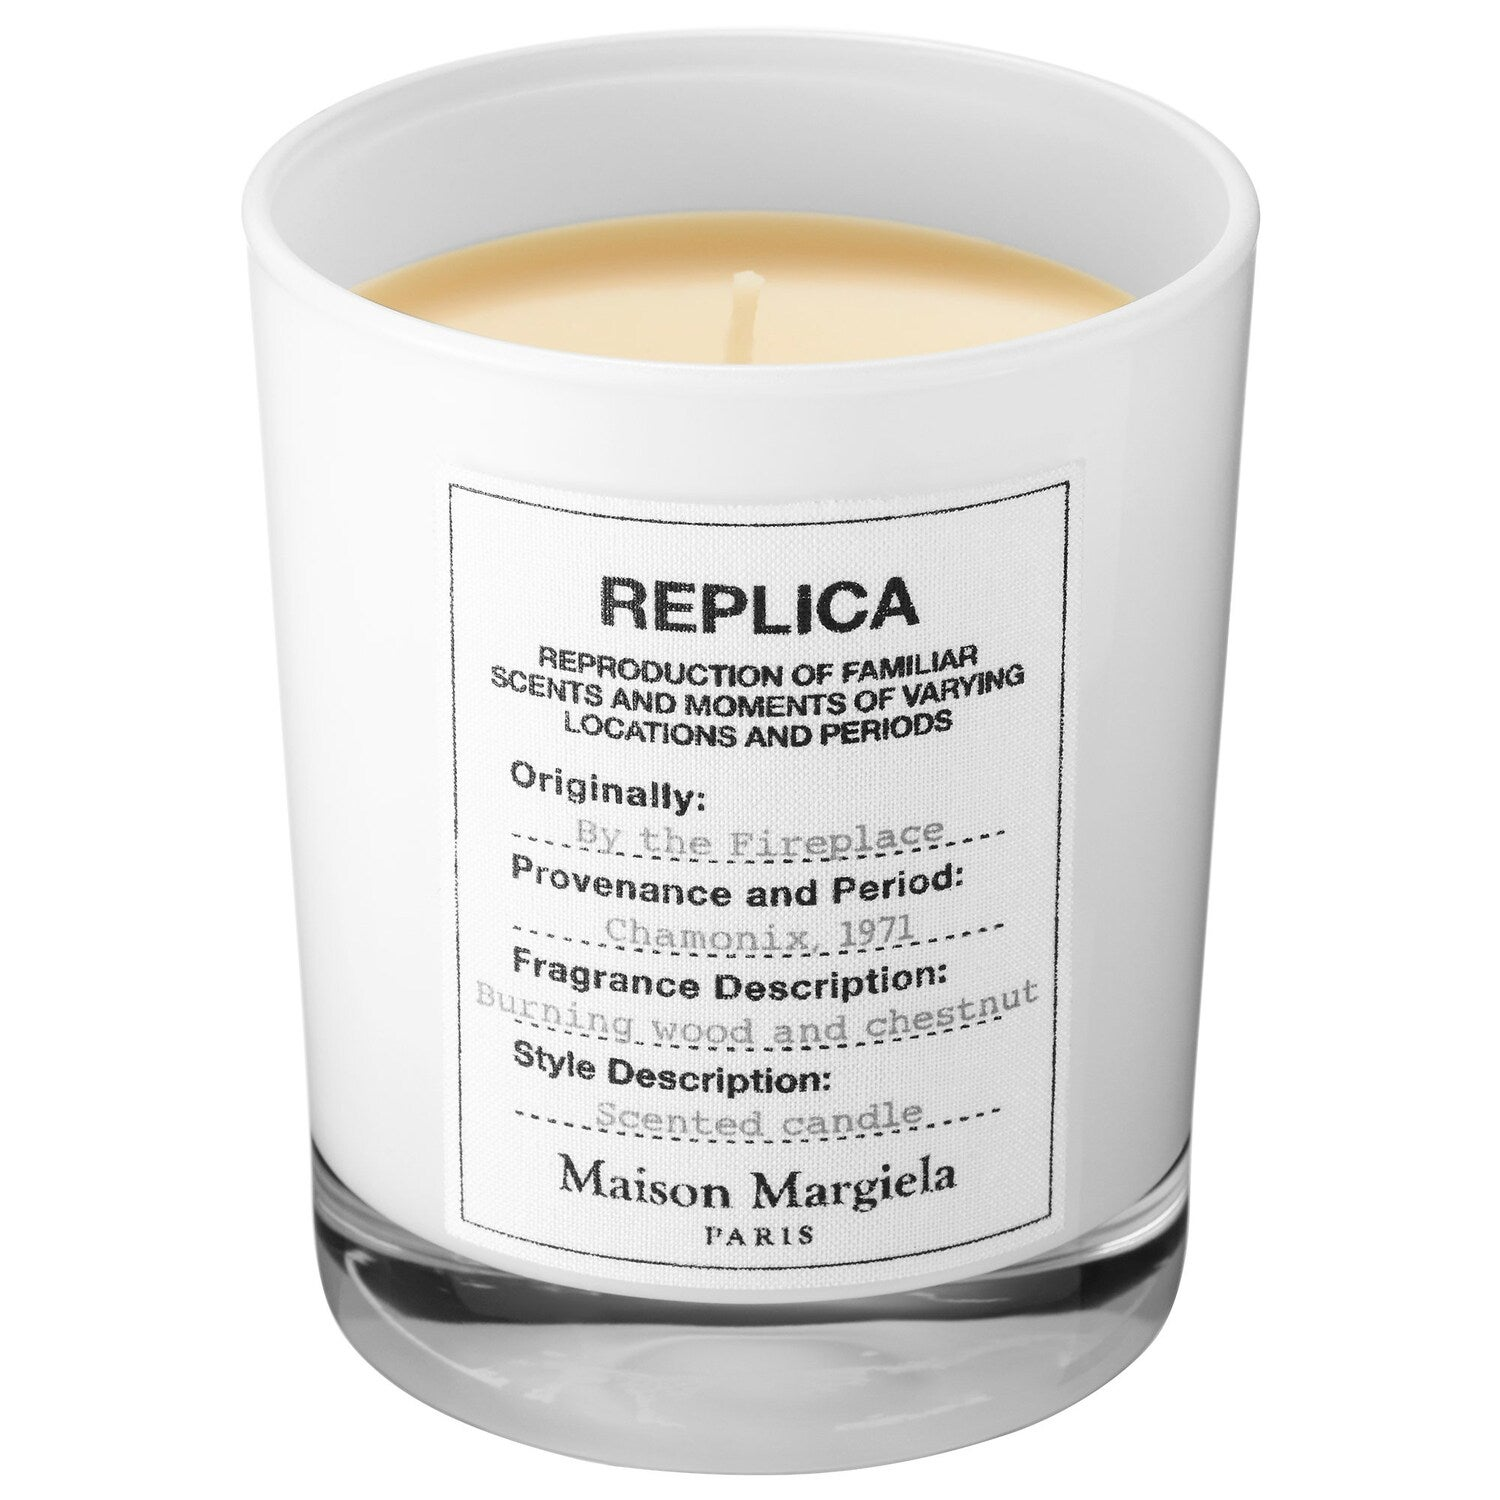 'REPLICA' By The Fireplace Candle